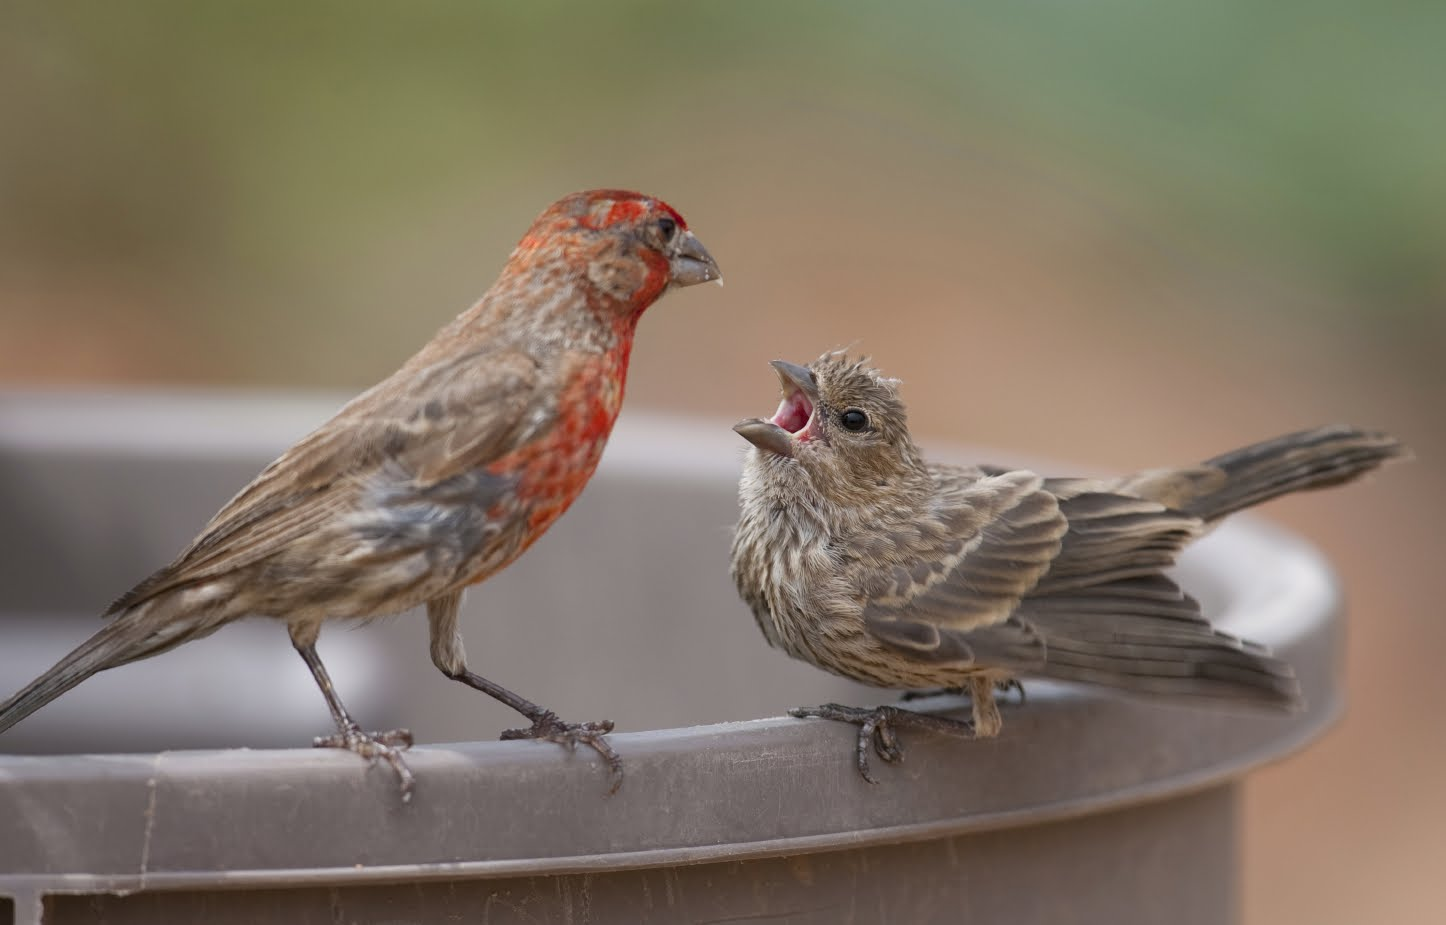 Baby birds must learn how to sing - answers.com